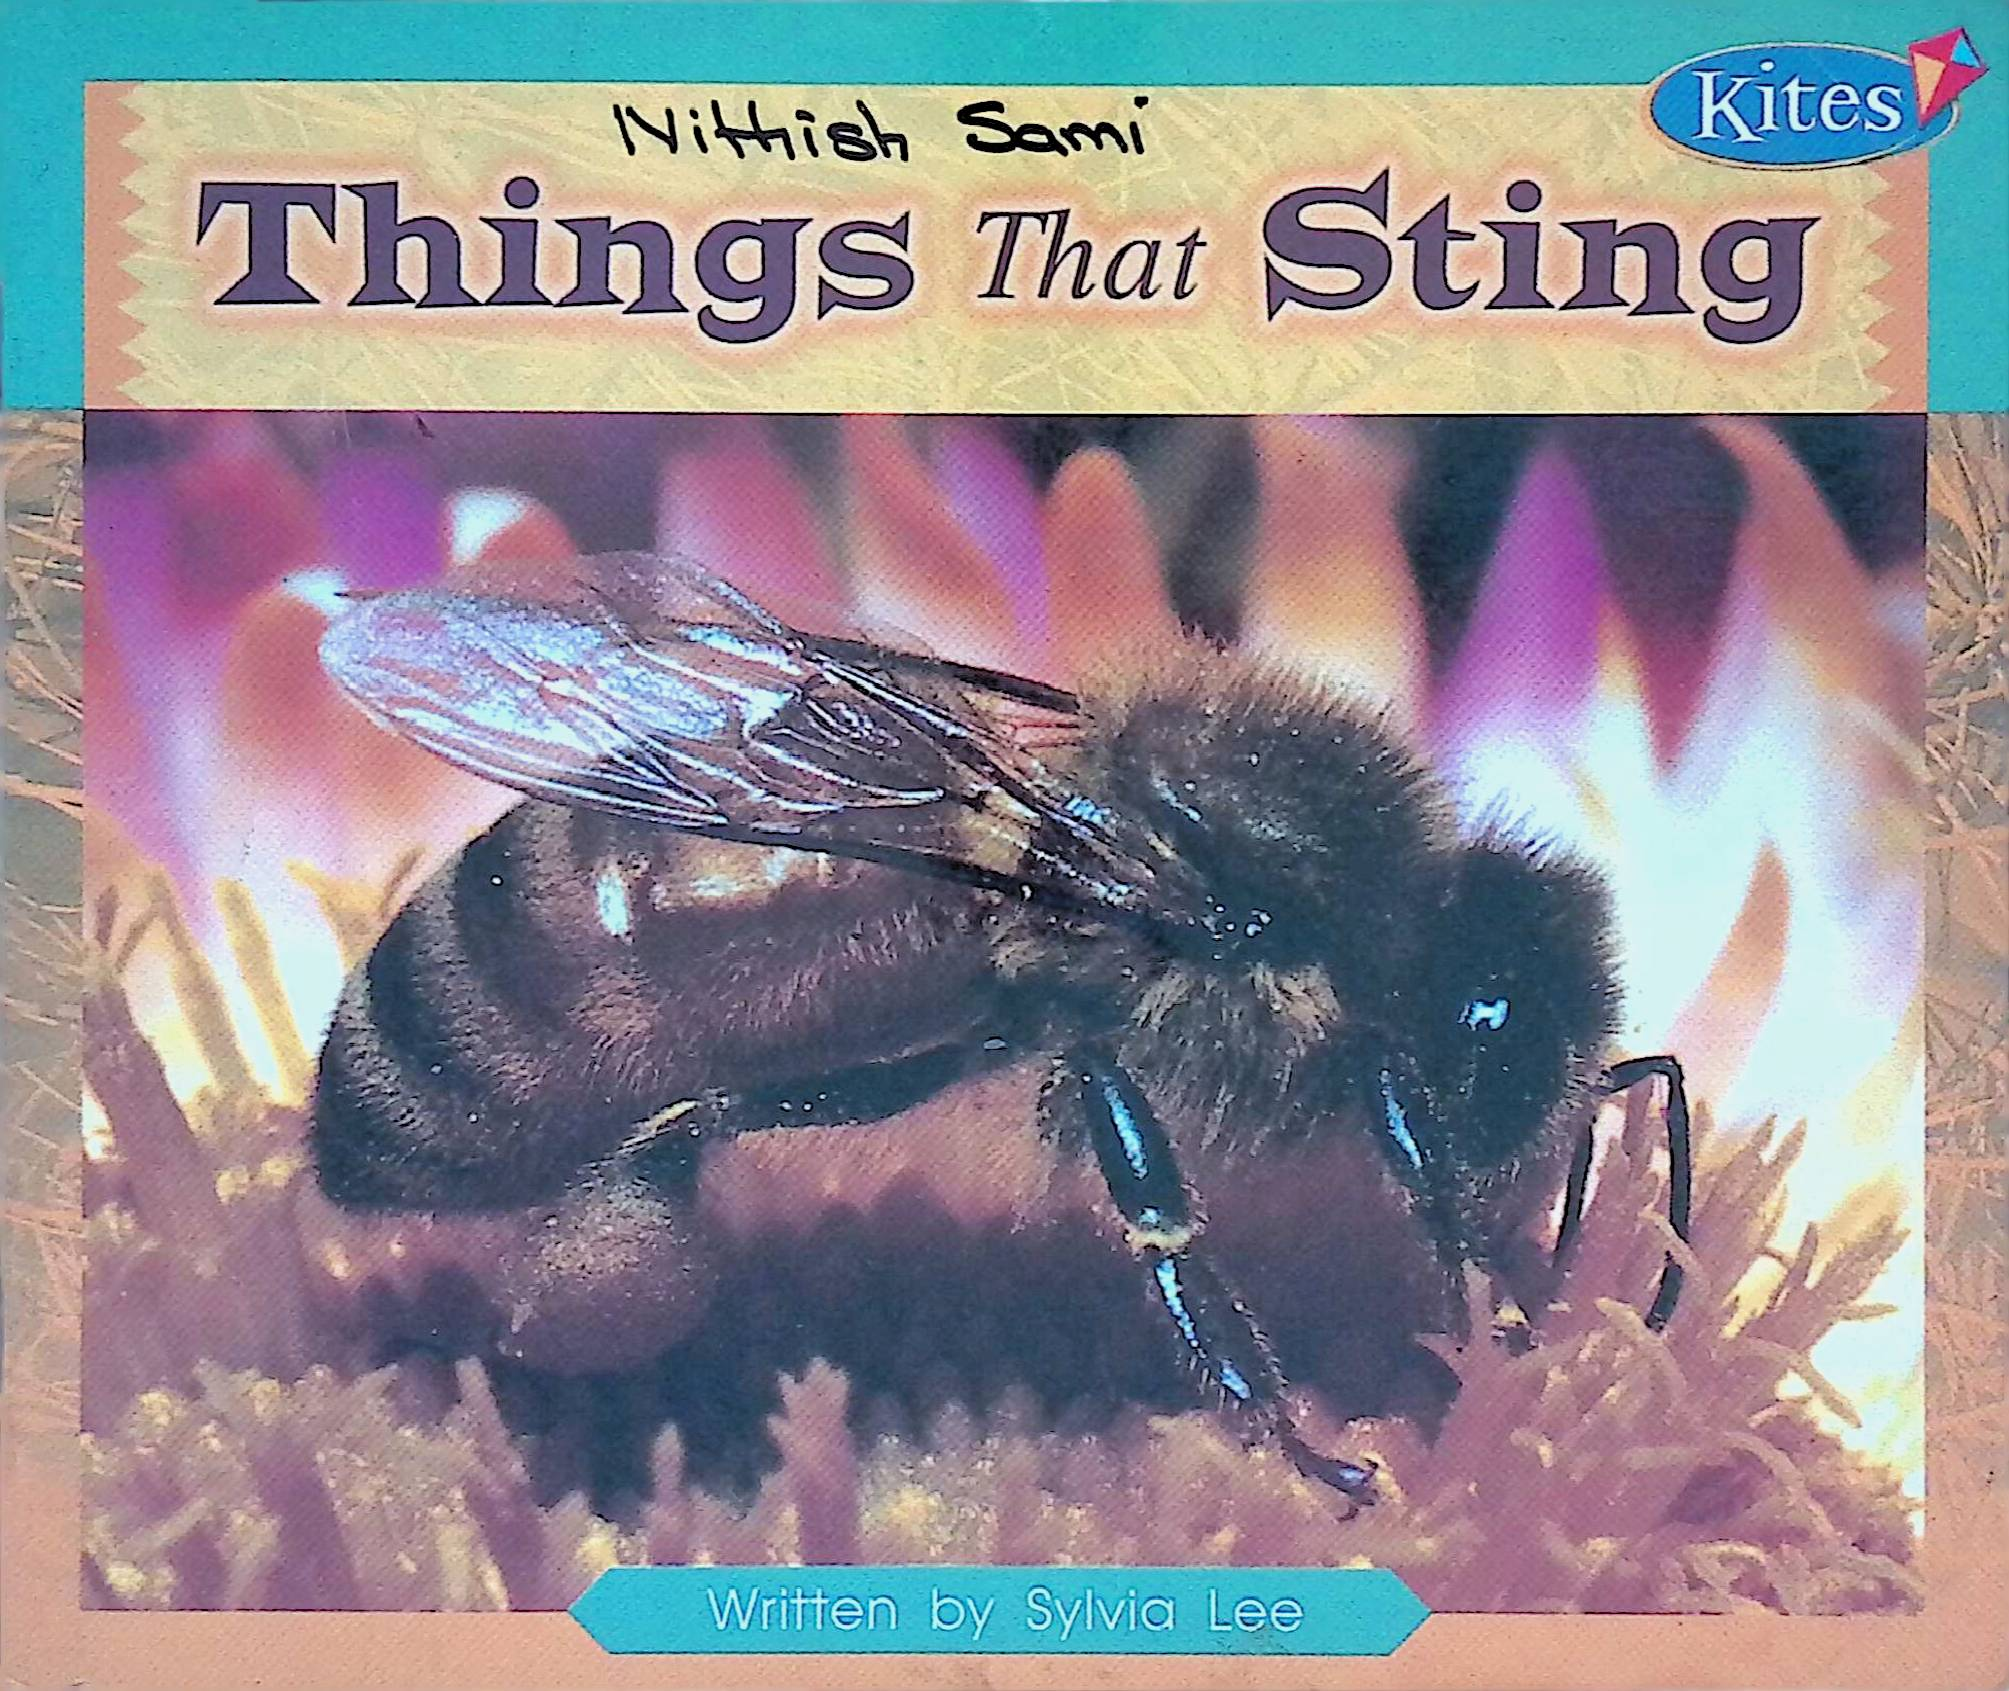 Things that sting / text by Sylvia Lee